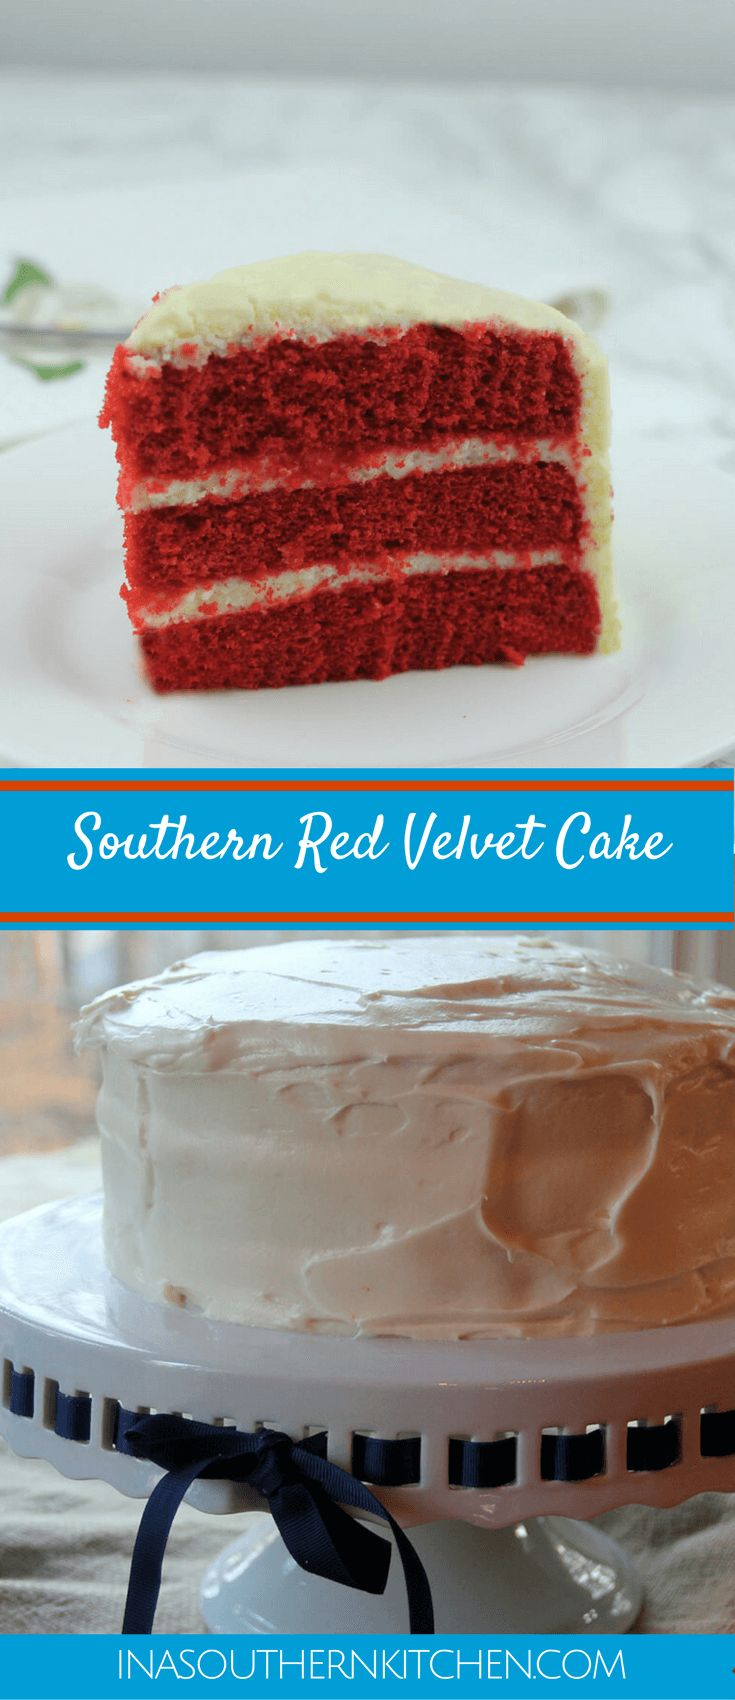 Southern Red Velvet Cake is a super moist cake with cream cheese frosting. This classic recipe will be an instant family favorite! via @insouthernktchn